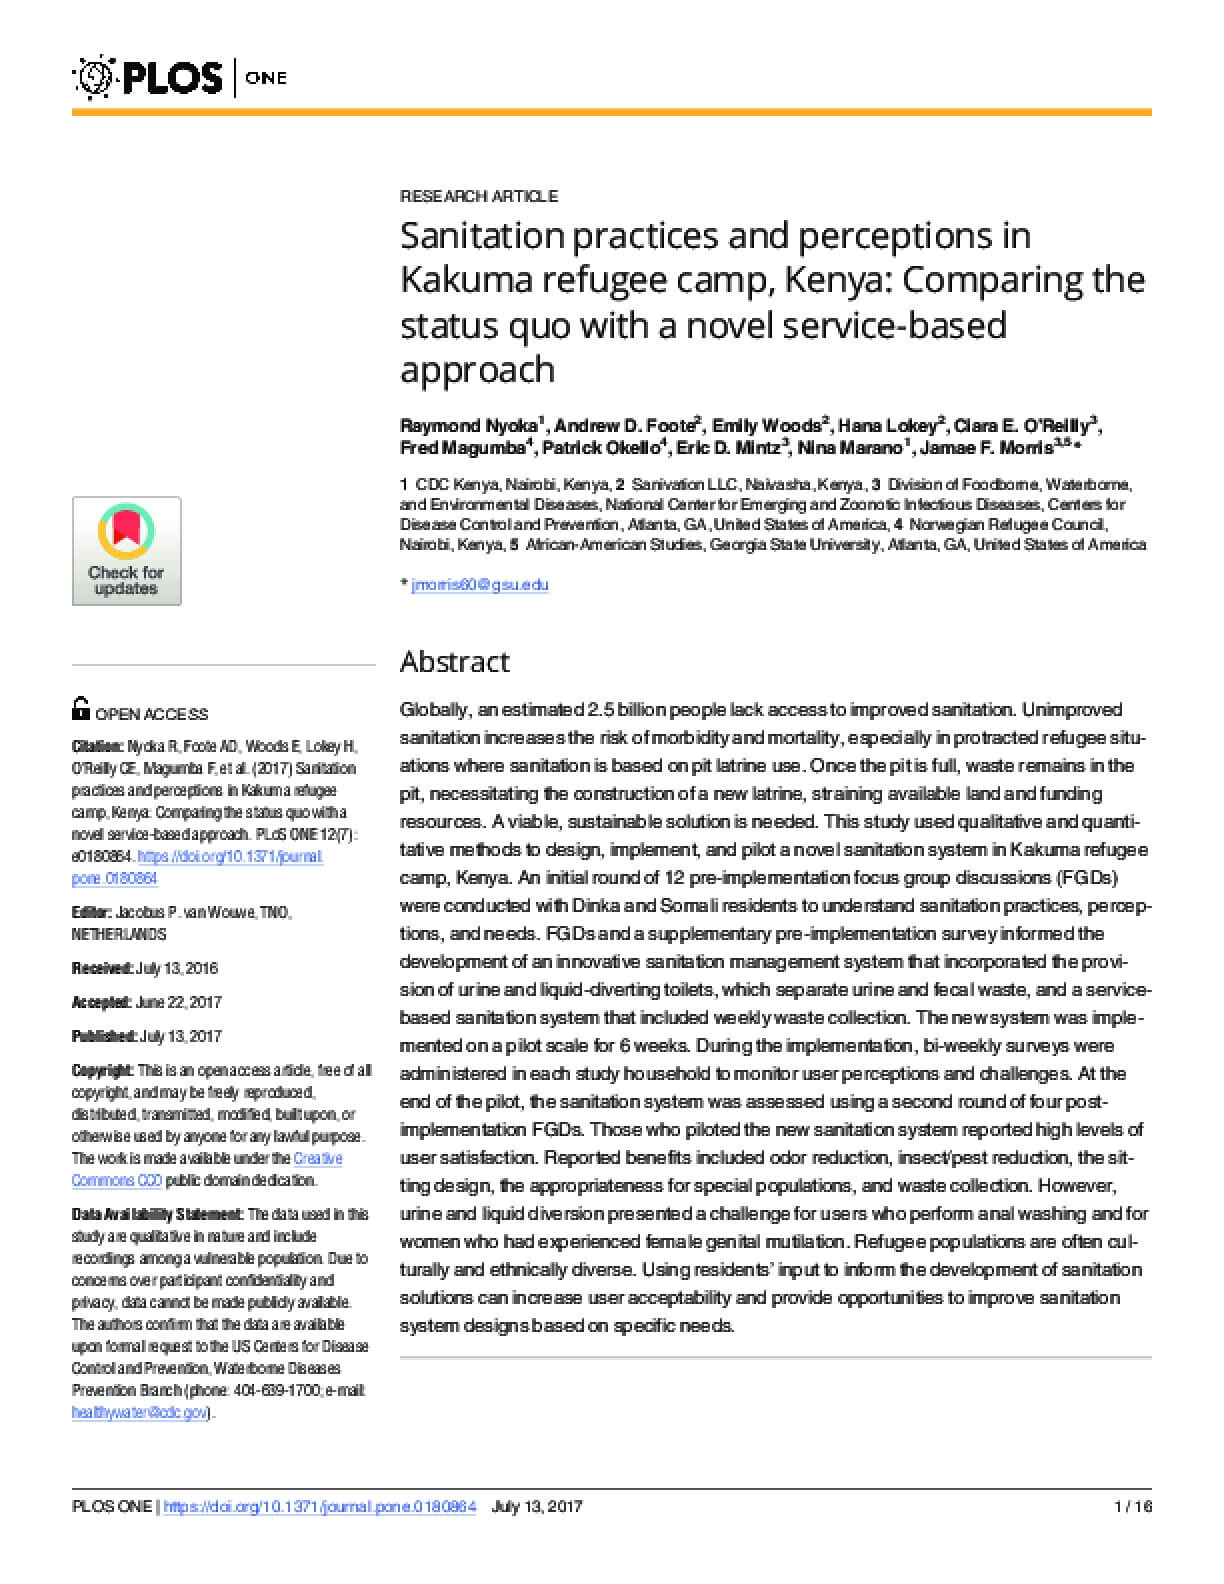 Sanitation Practices and Perceptions in Kakuma Refugee Camp, Kenya: Comparing the Status Quo With a Novel Service-Based Approach